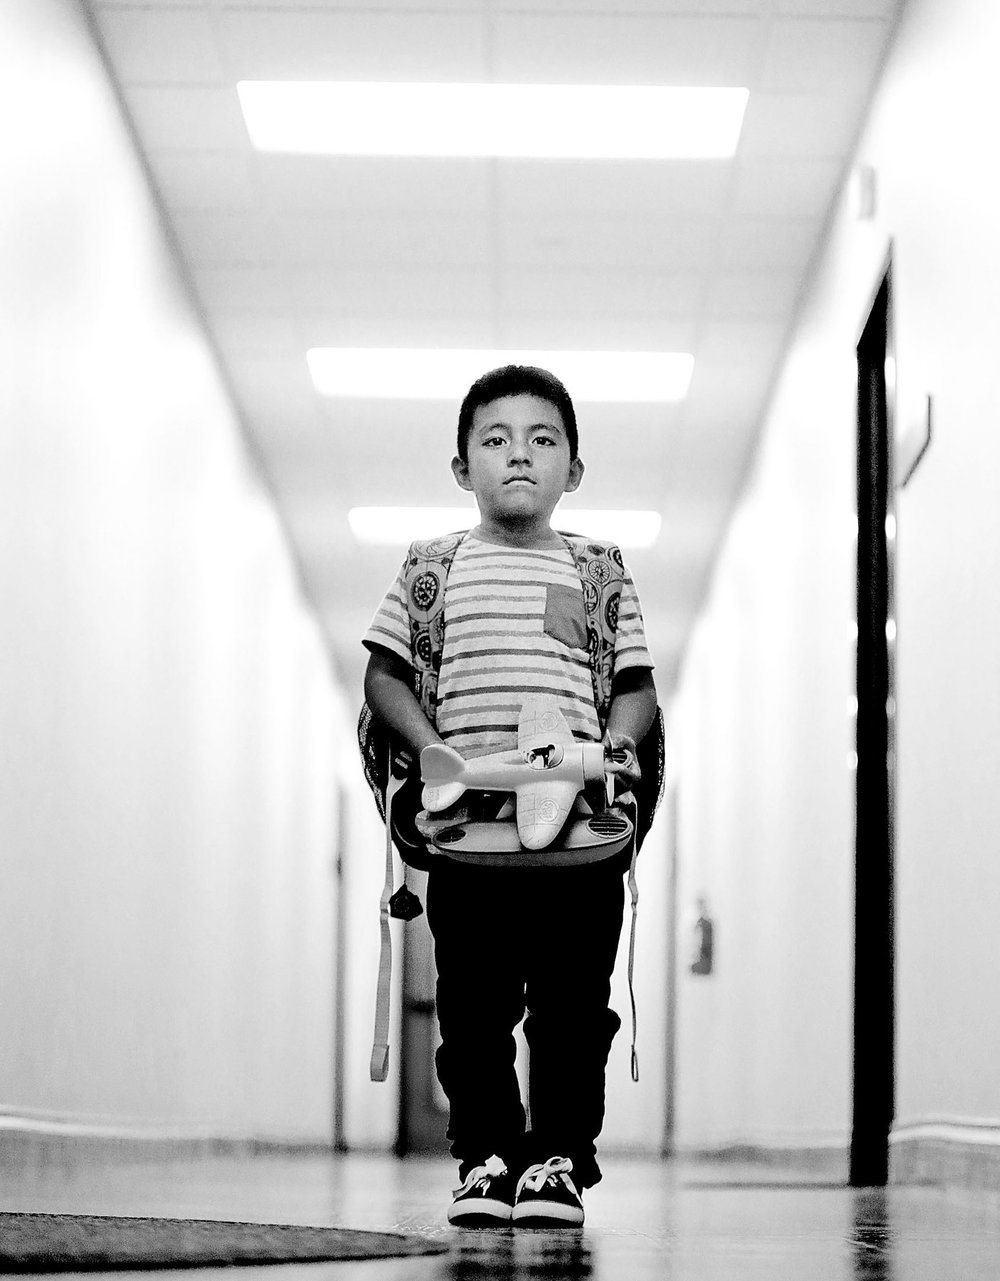 Nicolas Eduardo Nicolas Pedro, 6, from Guatemala and now of Riverside is an unaccompanied minor getting a green card to stay in the USA with the help of Immigration Law Offices of Hadley Bajramovic Thursday in Riverside, CA. August 17, 2017.